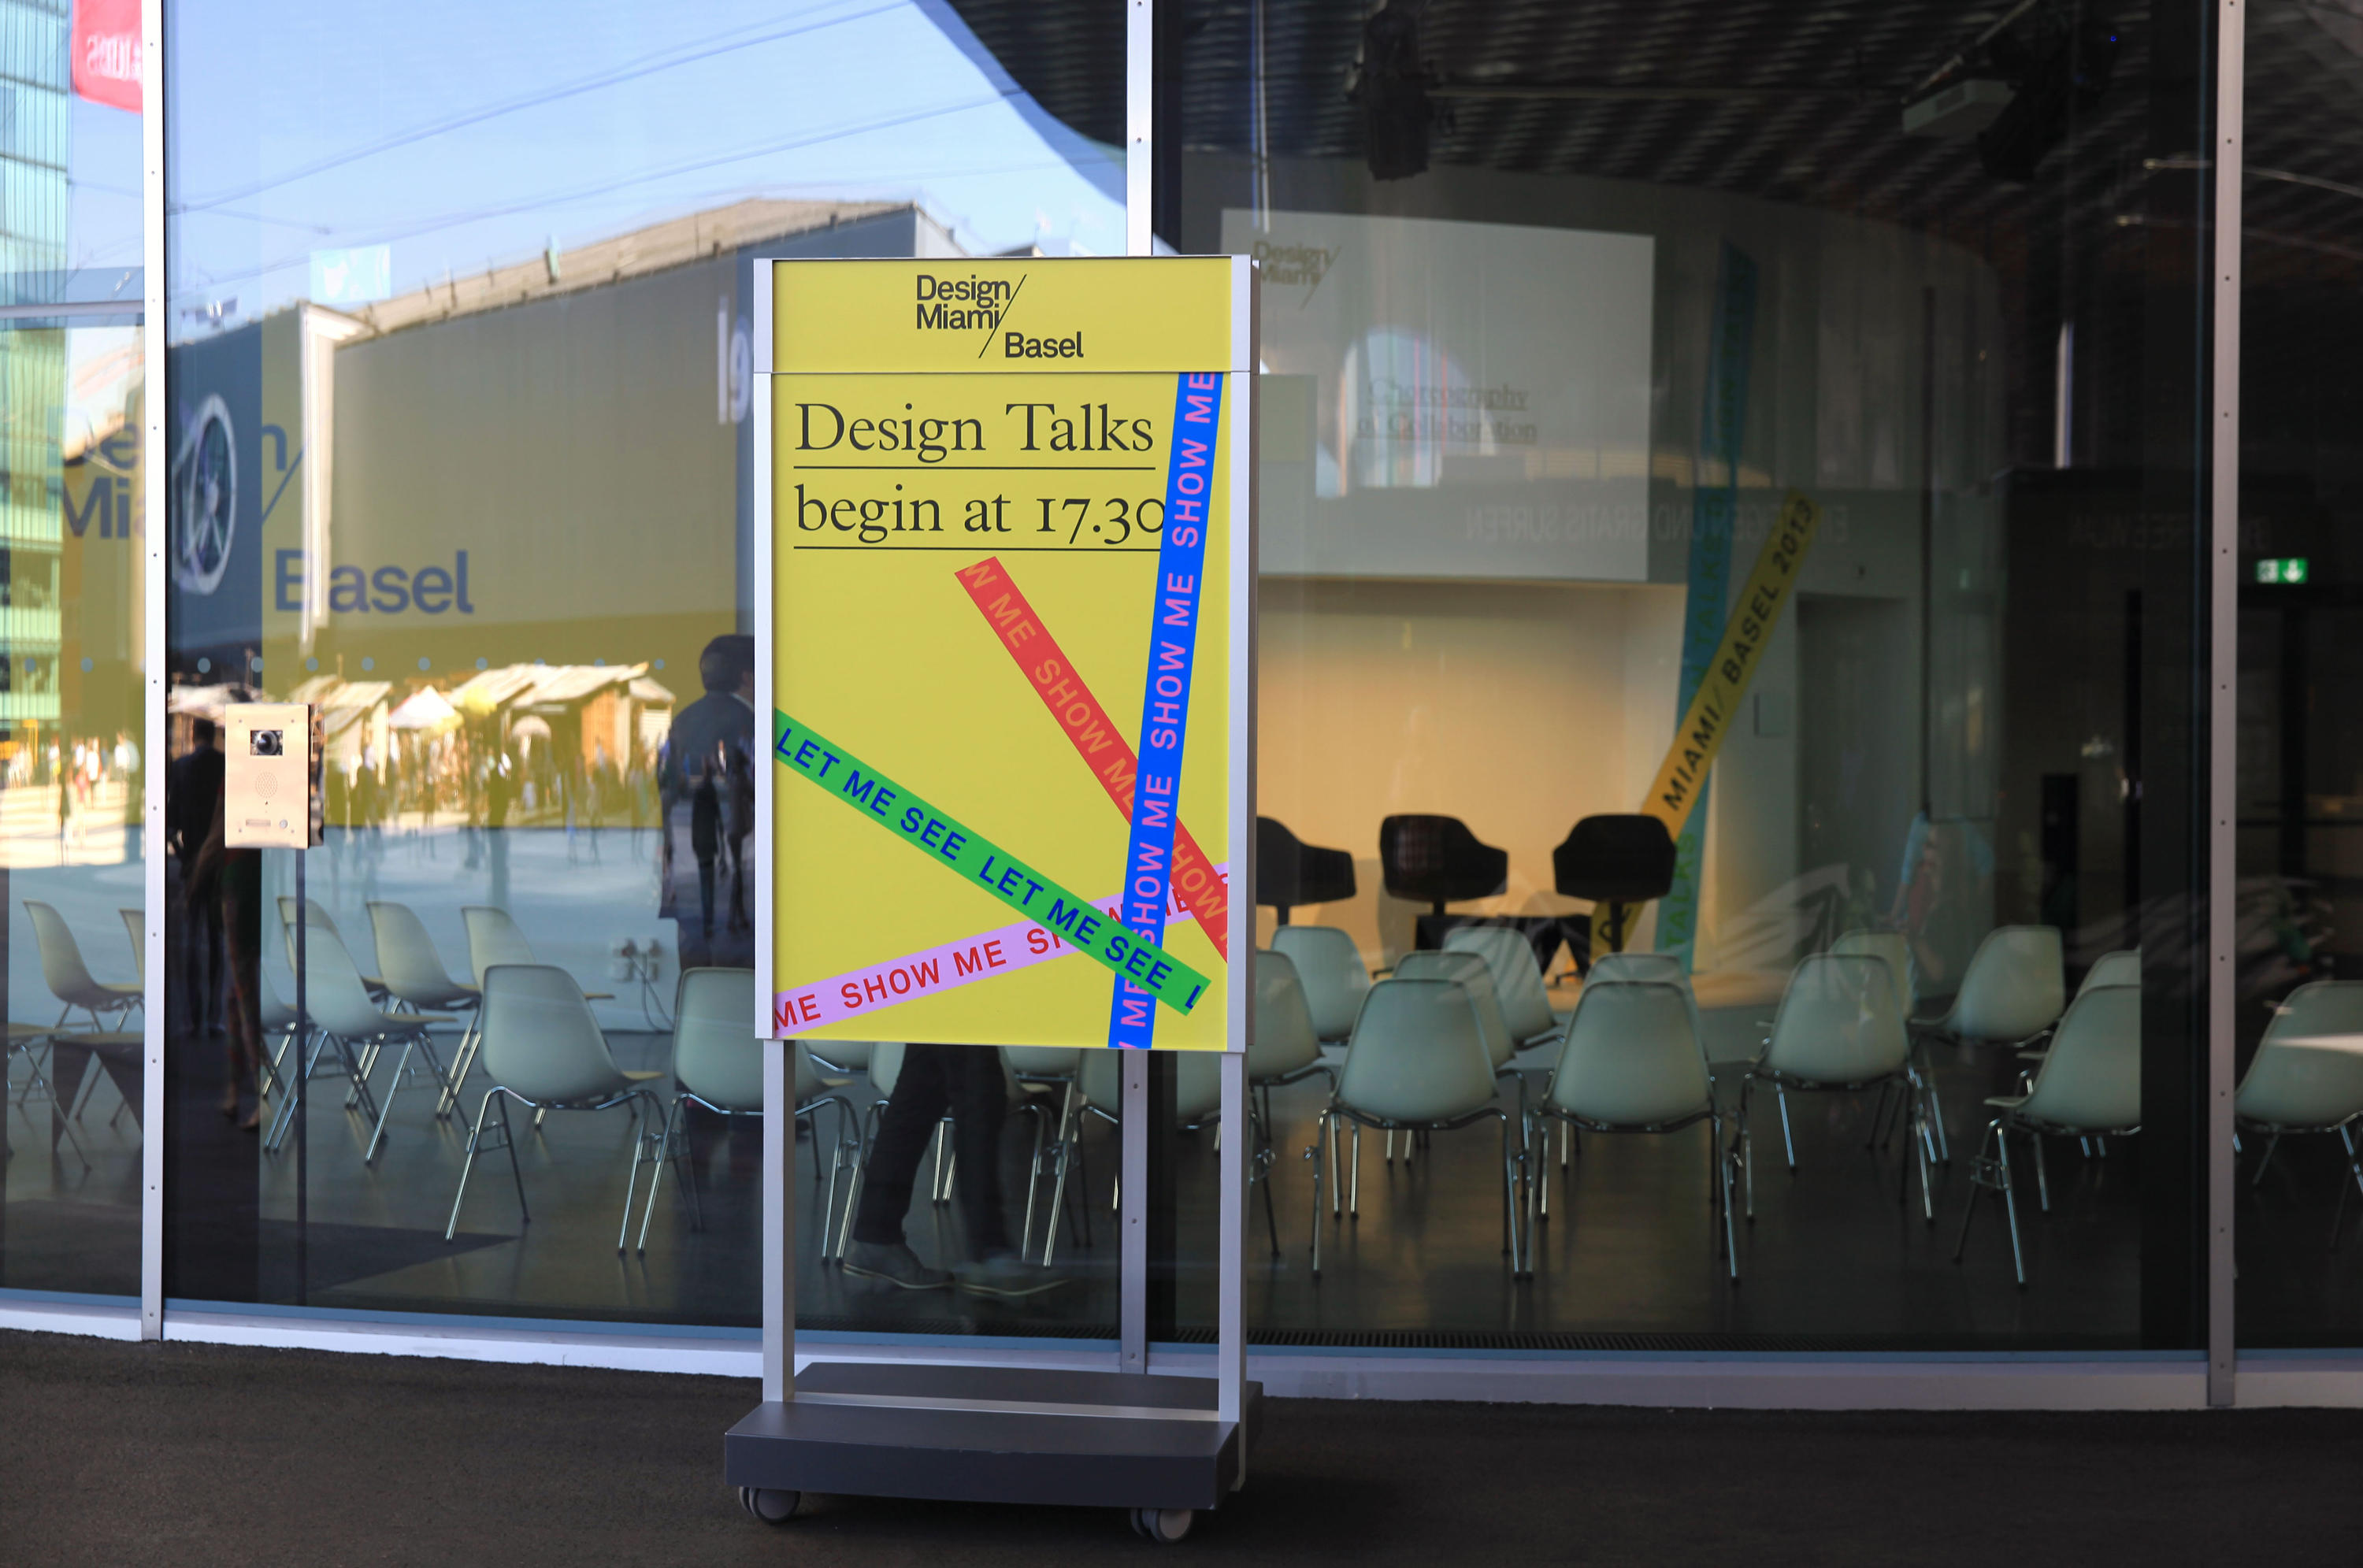 SIGNAGE SYSTEM MESSE BASEL BY BURRI – MOBILE INDOOR F4 TWIN-SIDED STELE - Media displays from..